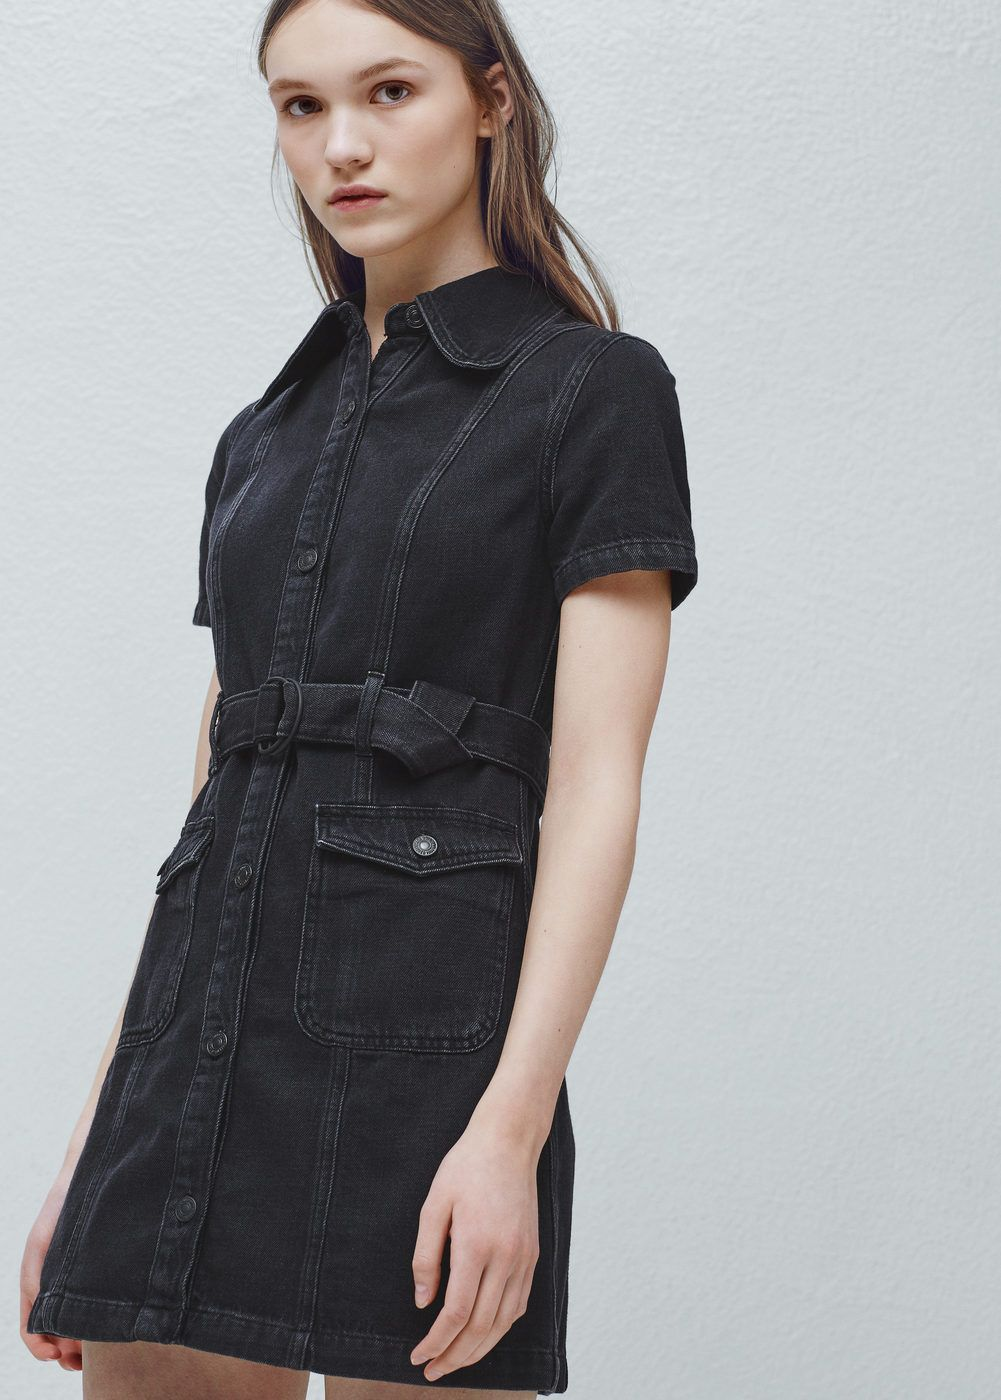 e631a75d58ec58 Denim shirt dress - Women in 2019 | DRESSES | Denim shirt dress ...